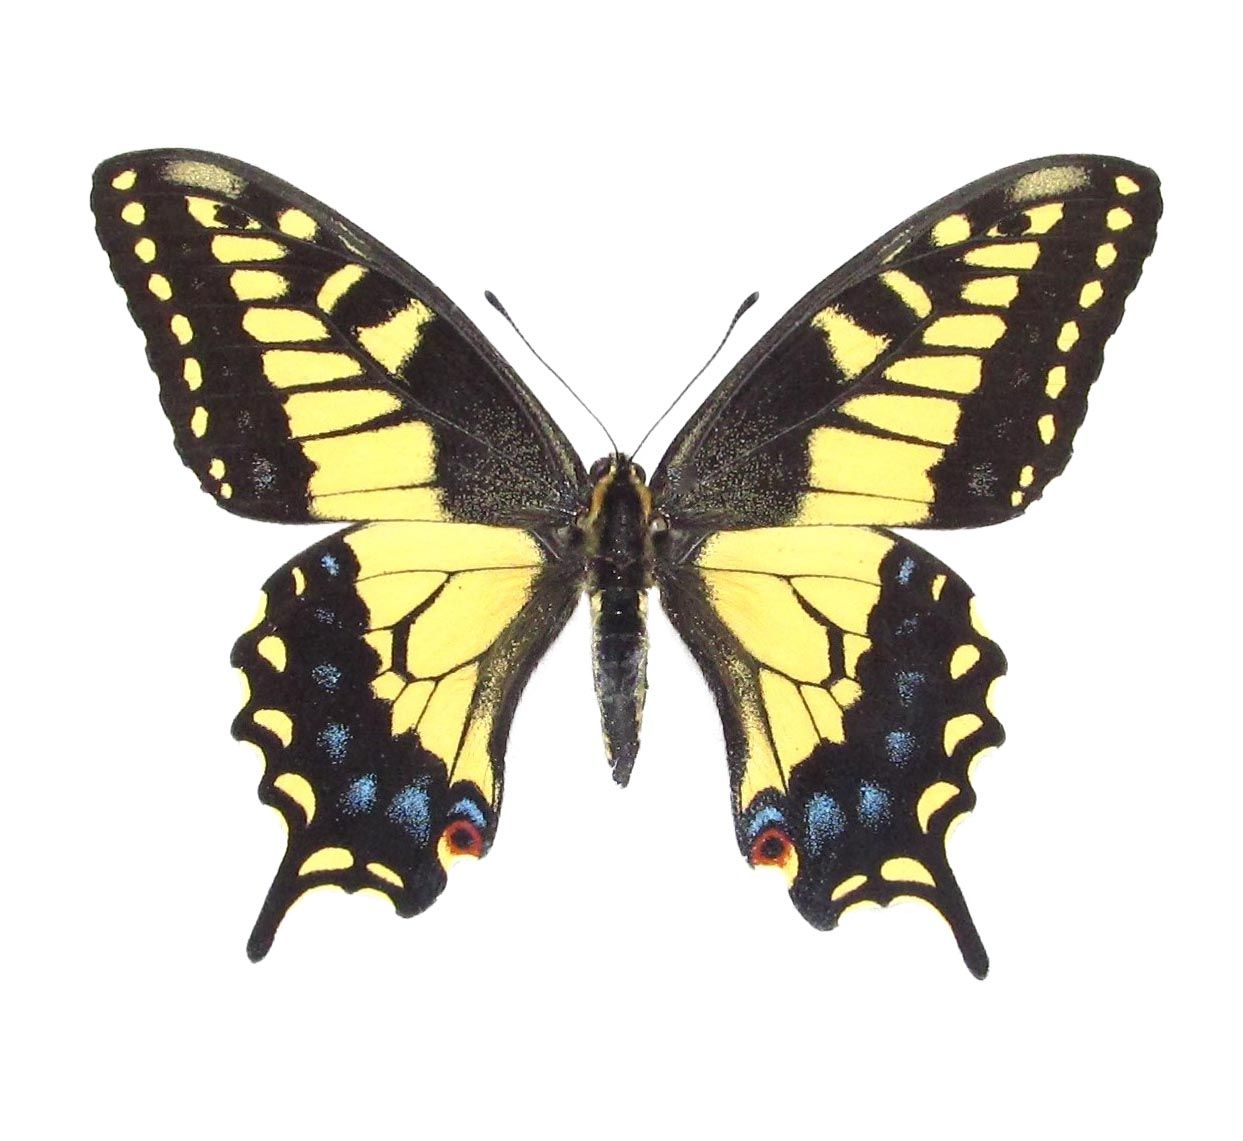 Bicbugs Papilio Zelicaon Anise Swallowtail Yellow Black Butterfly California Black Butterfly Yellow Butterfly Tattoo Butterfly Species